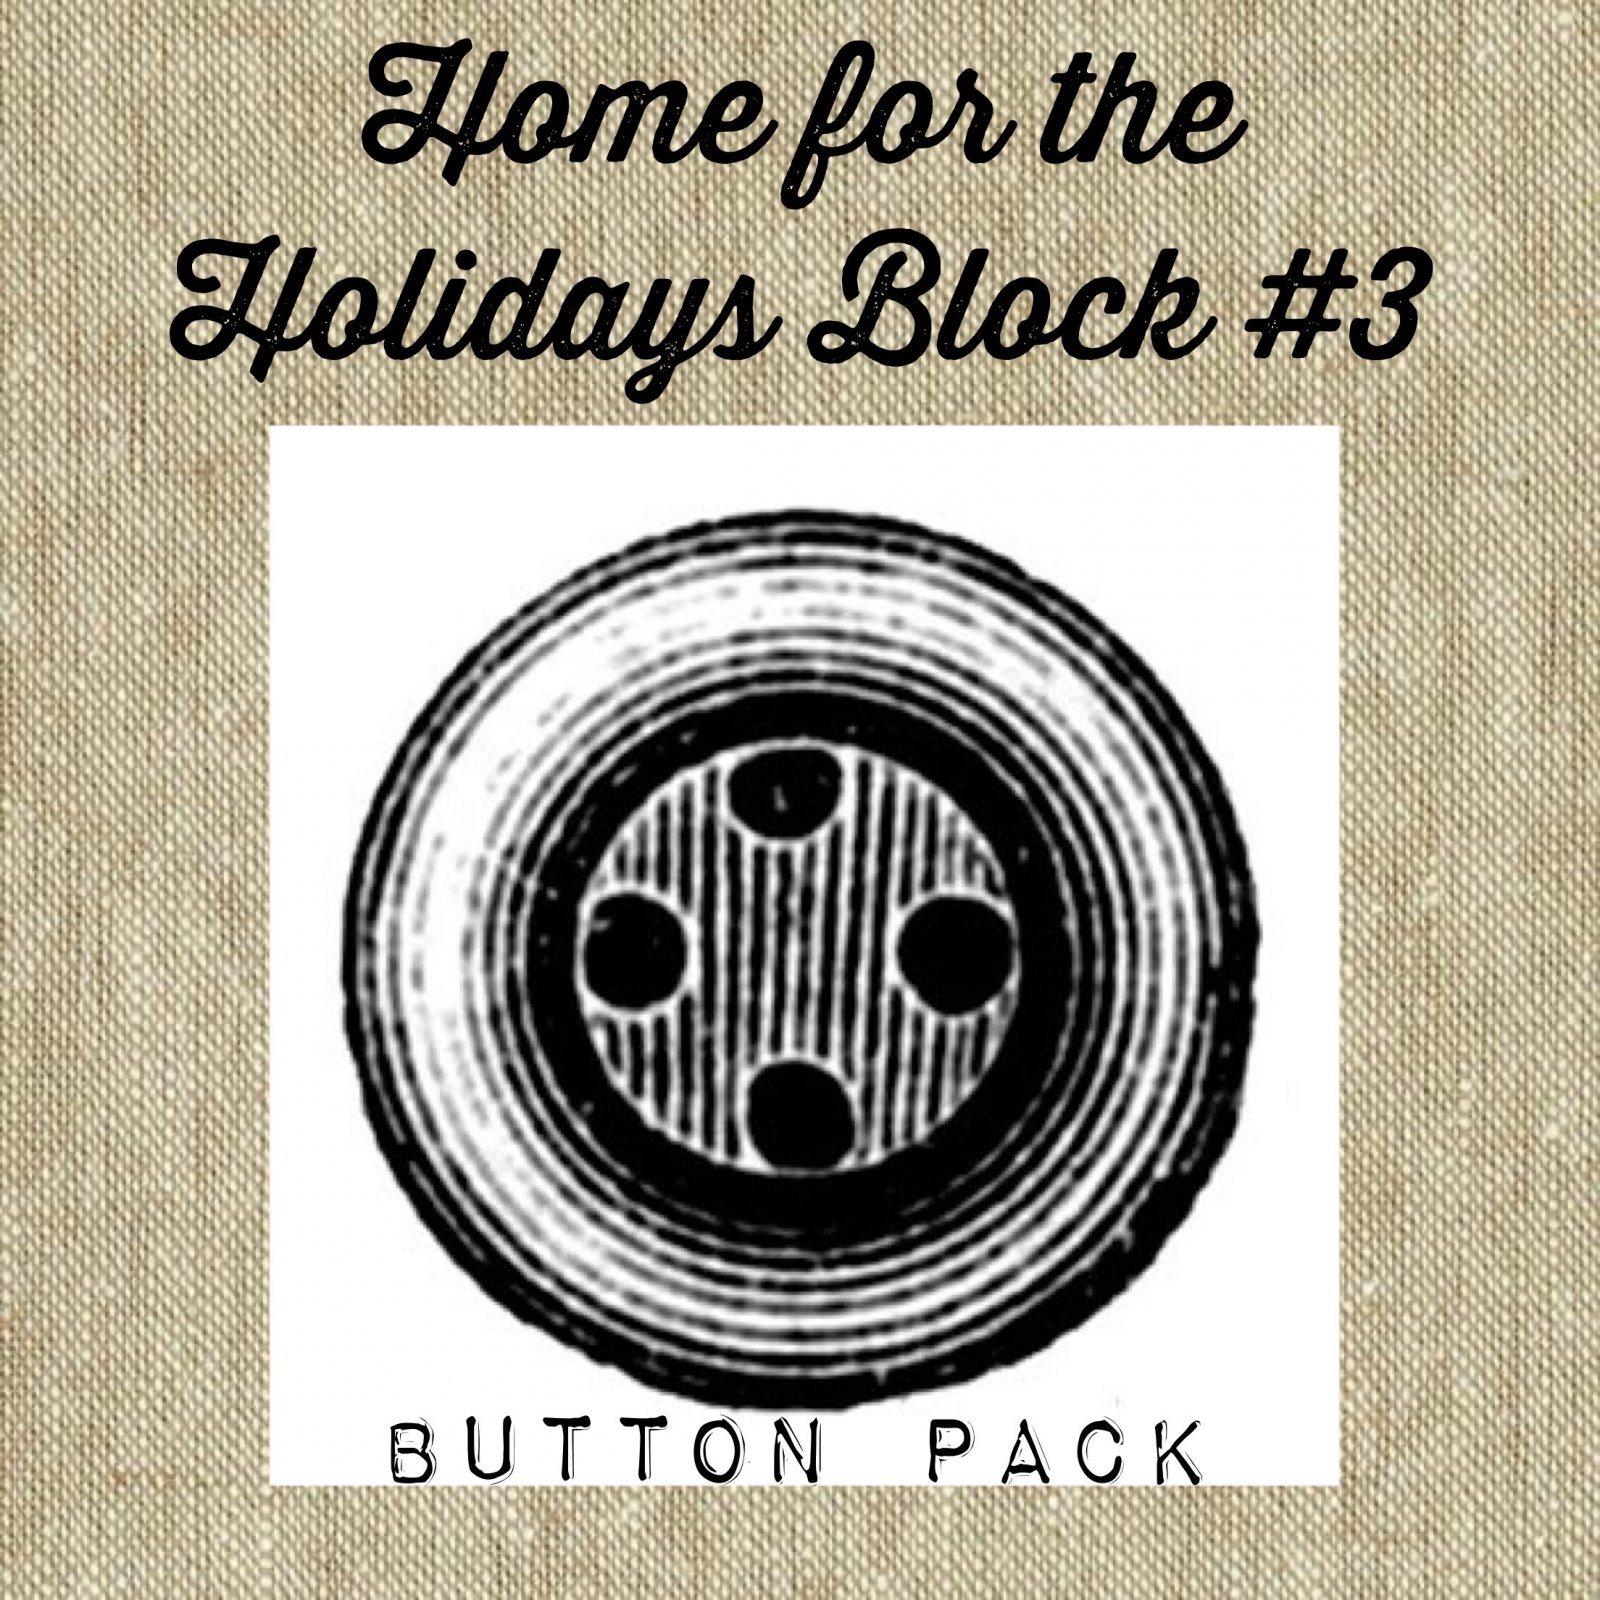 Home For The Holidays BOW! Block #3 Button Pack